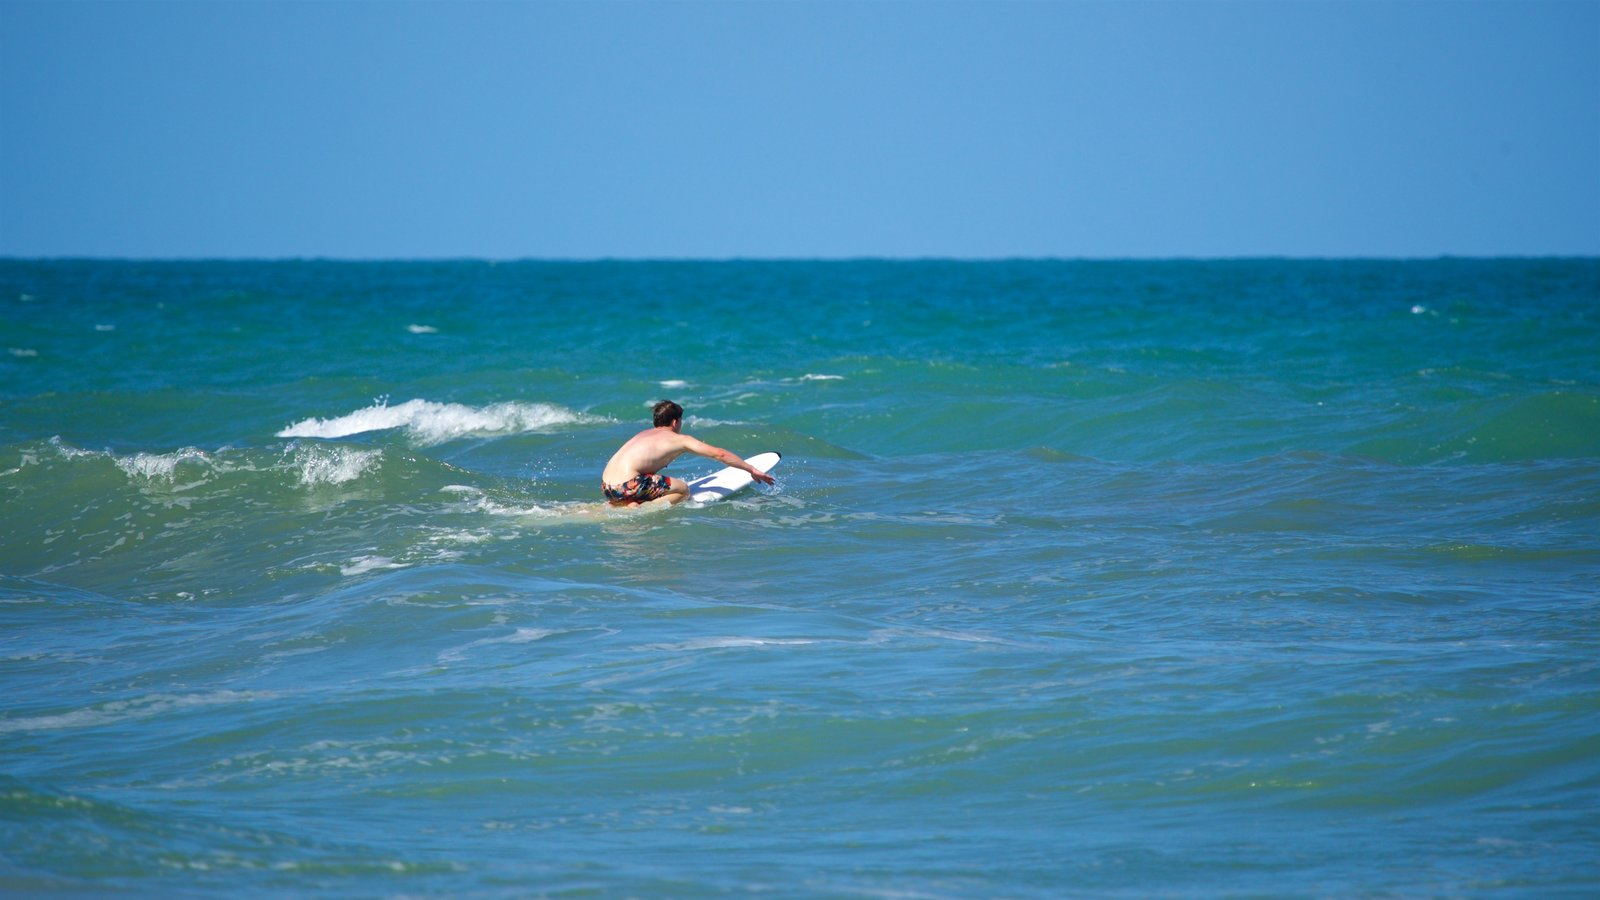 Cocoa Beach which includes general coastal views and surfing as well as an individual male